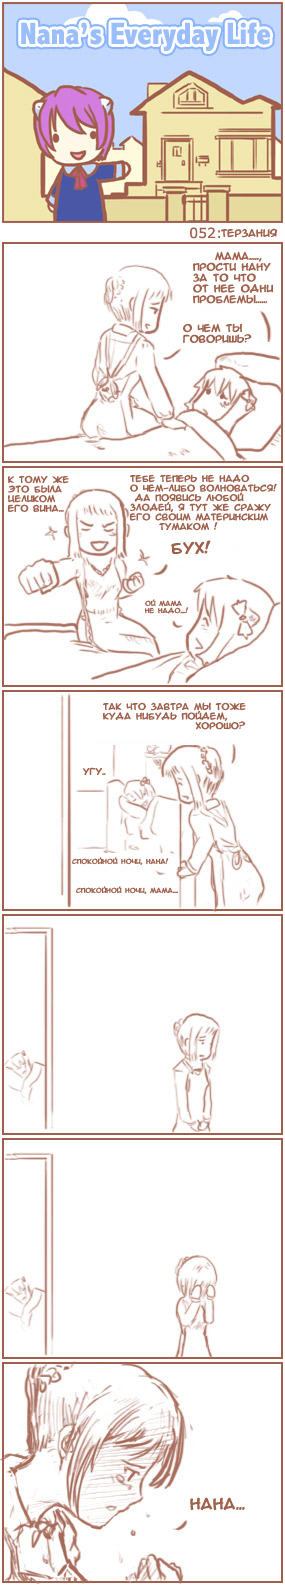 [Nana's Everyday Life - strip 52]